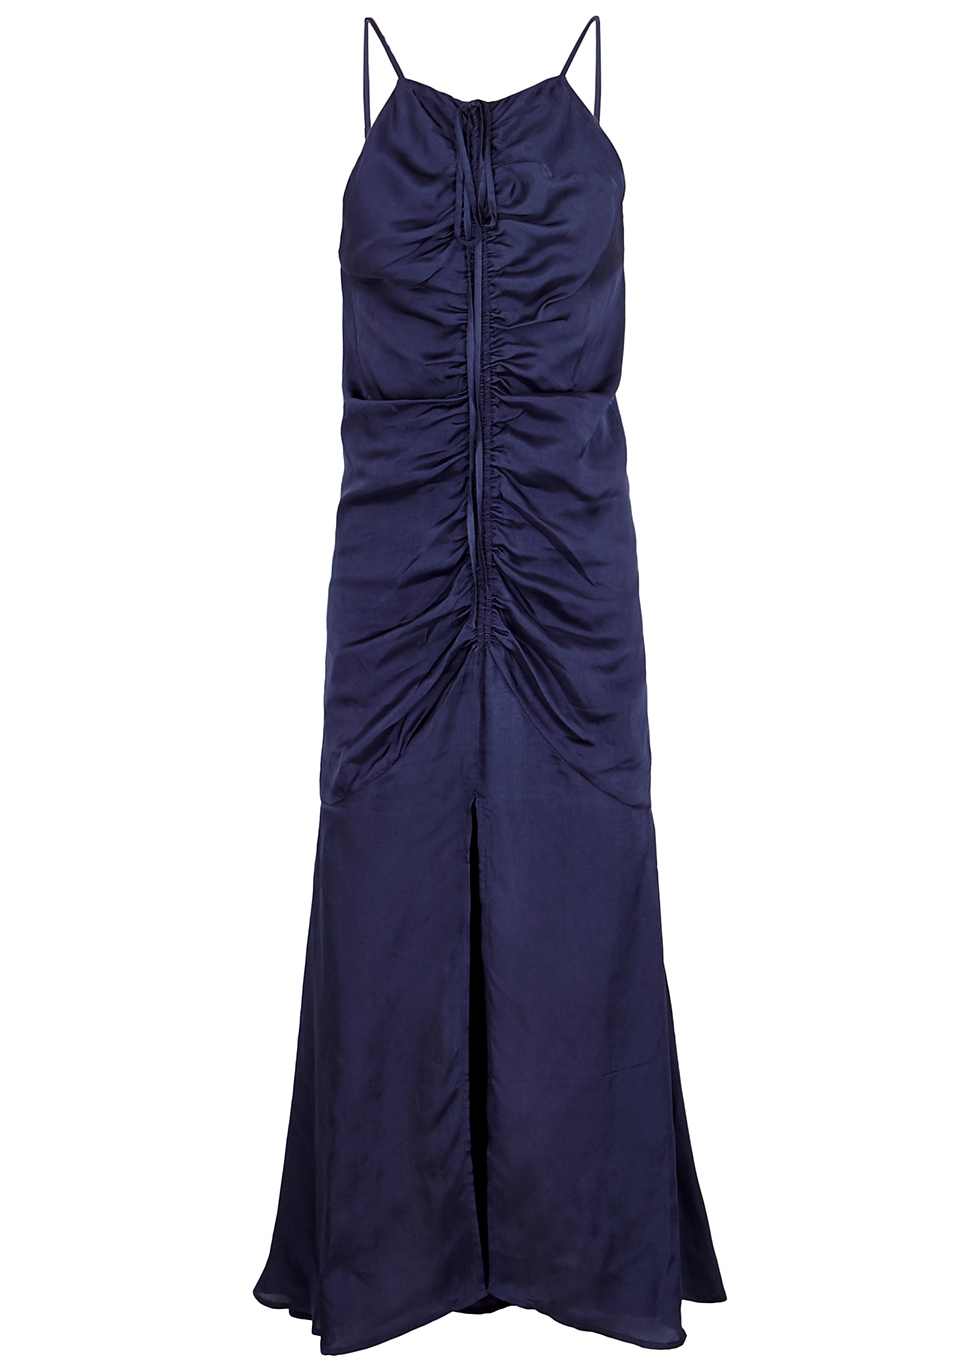 Blue Moon ruched satin midi dress - alice McCALL